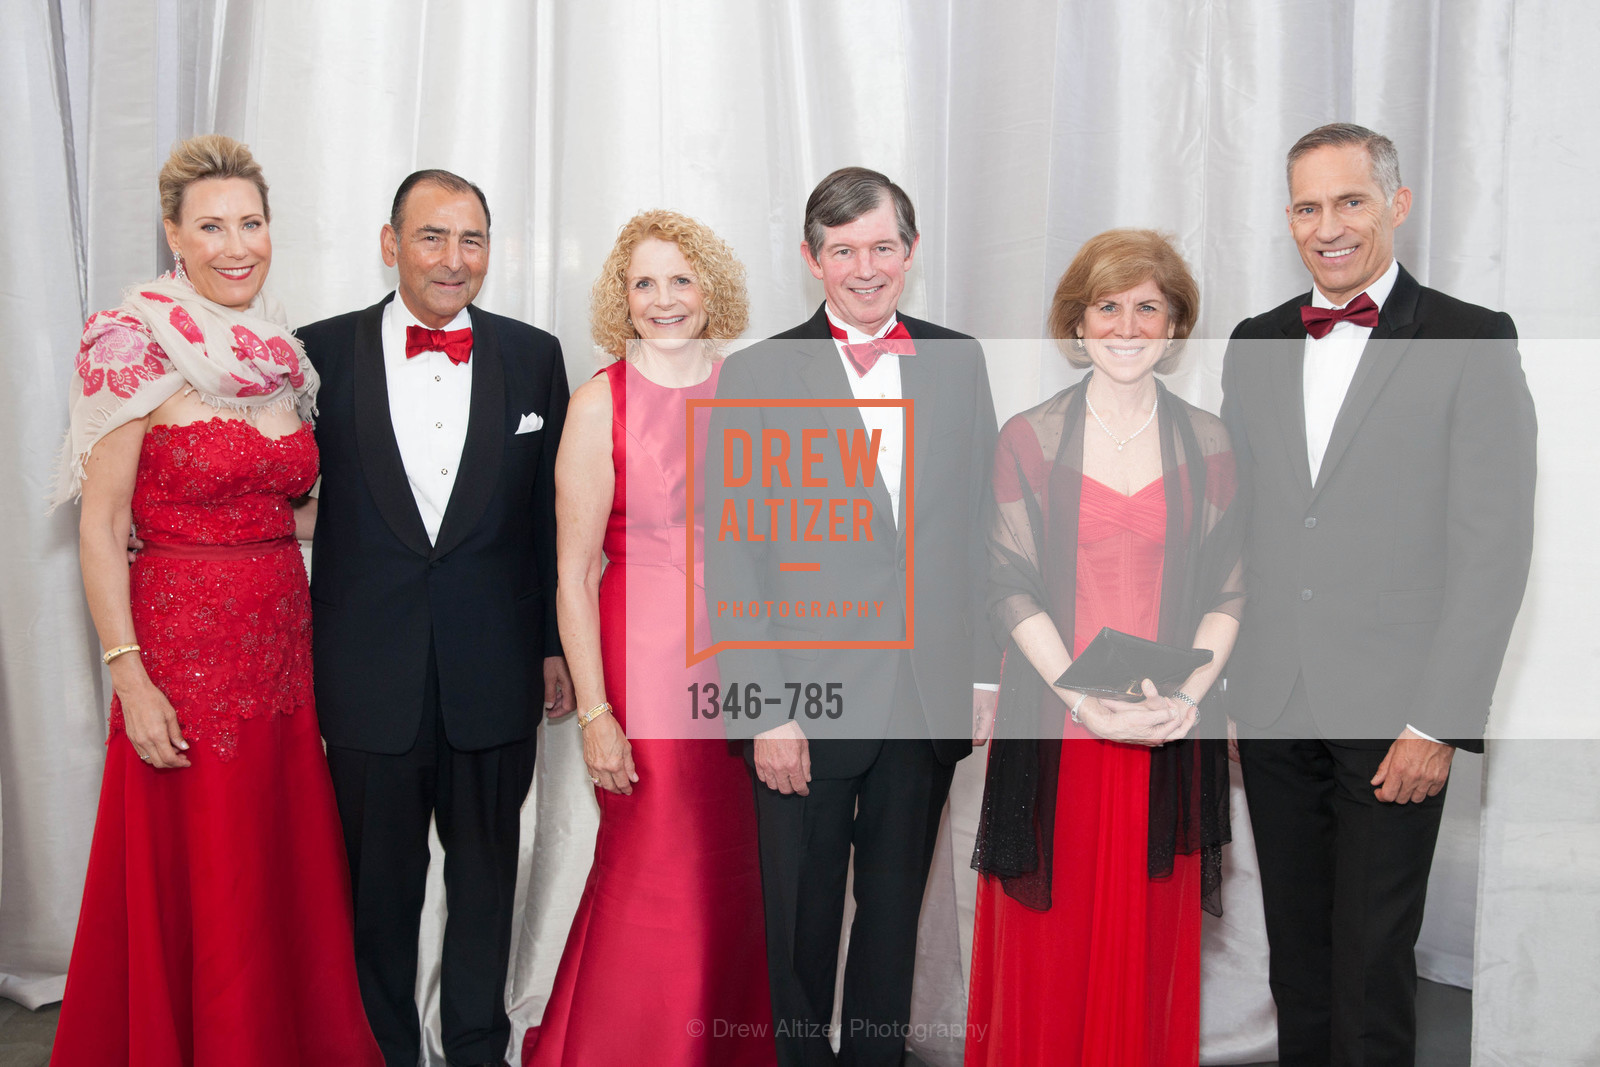 Carolyn Mehran, Alexander Mehran, Sarah Earley, Anthony Earley, Gail McGovern, Mark Cloutier, 2015 RED CROSS Gala, US, April 12th, 2015,Drew Altizer, Drew Altizer Photography, full-service agency, private events, San Francisco photographer, photographer california